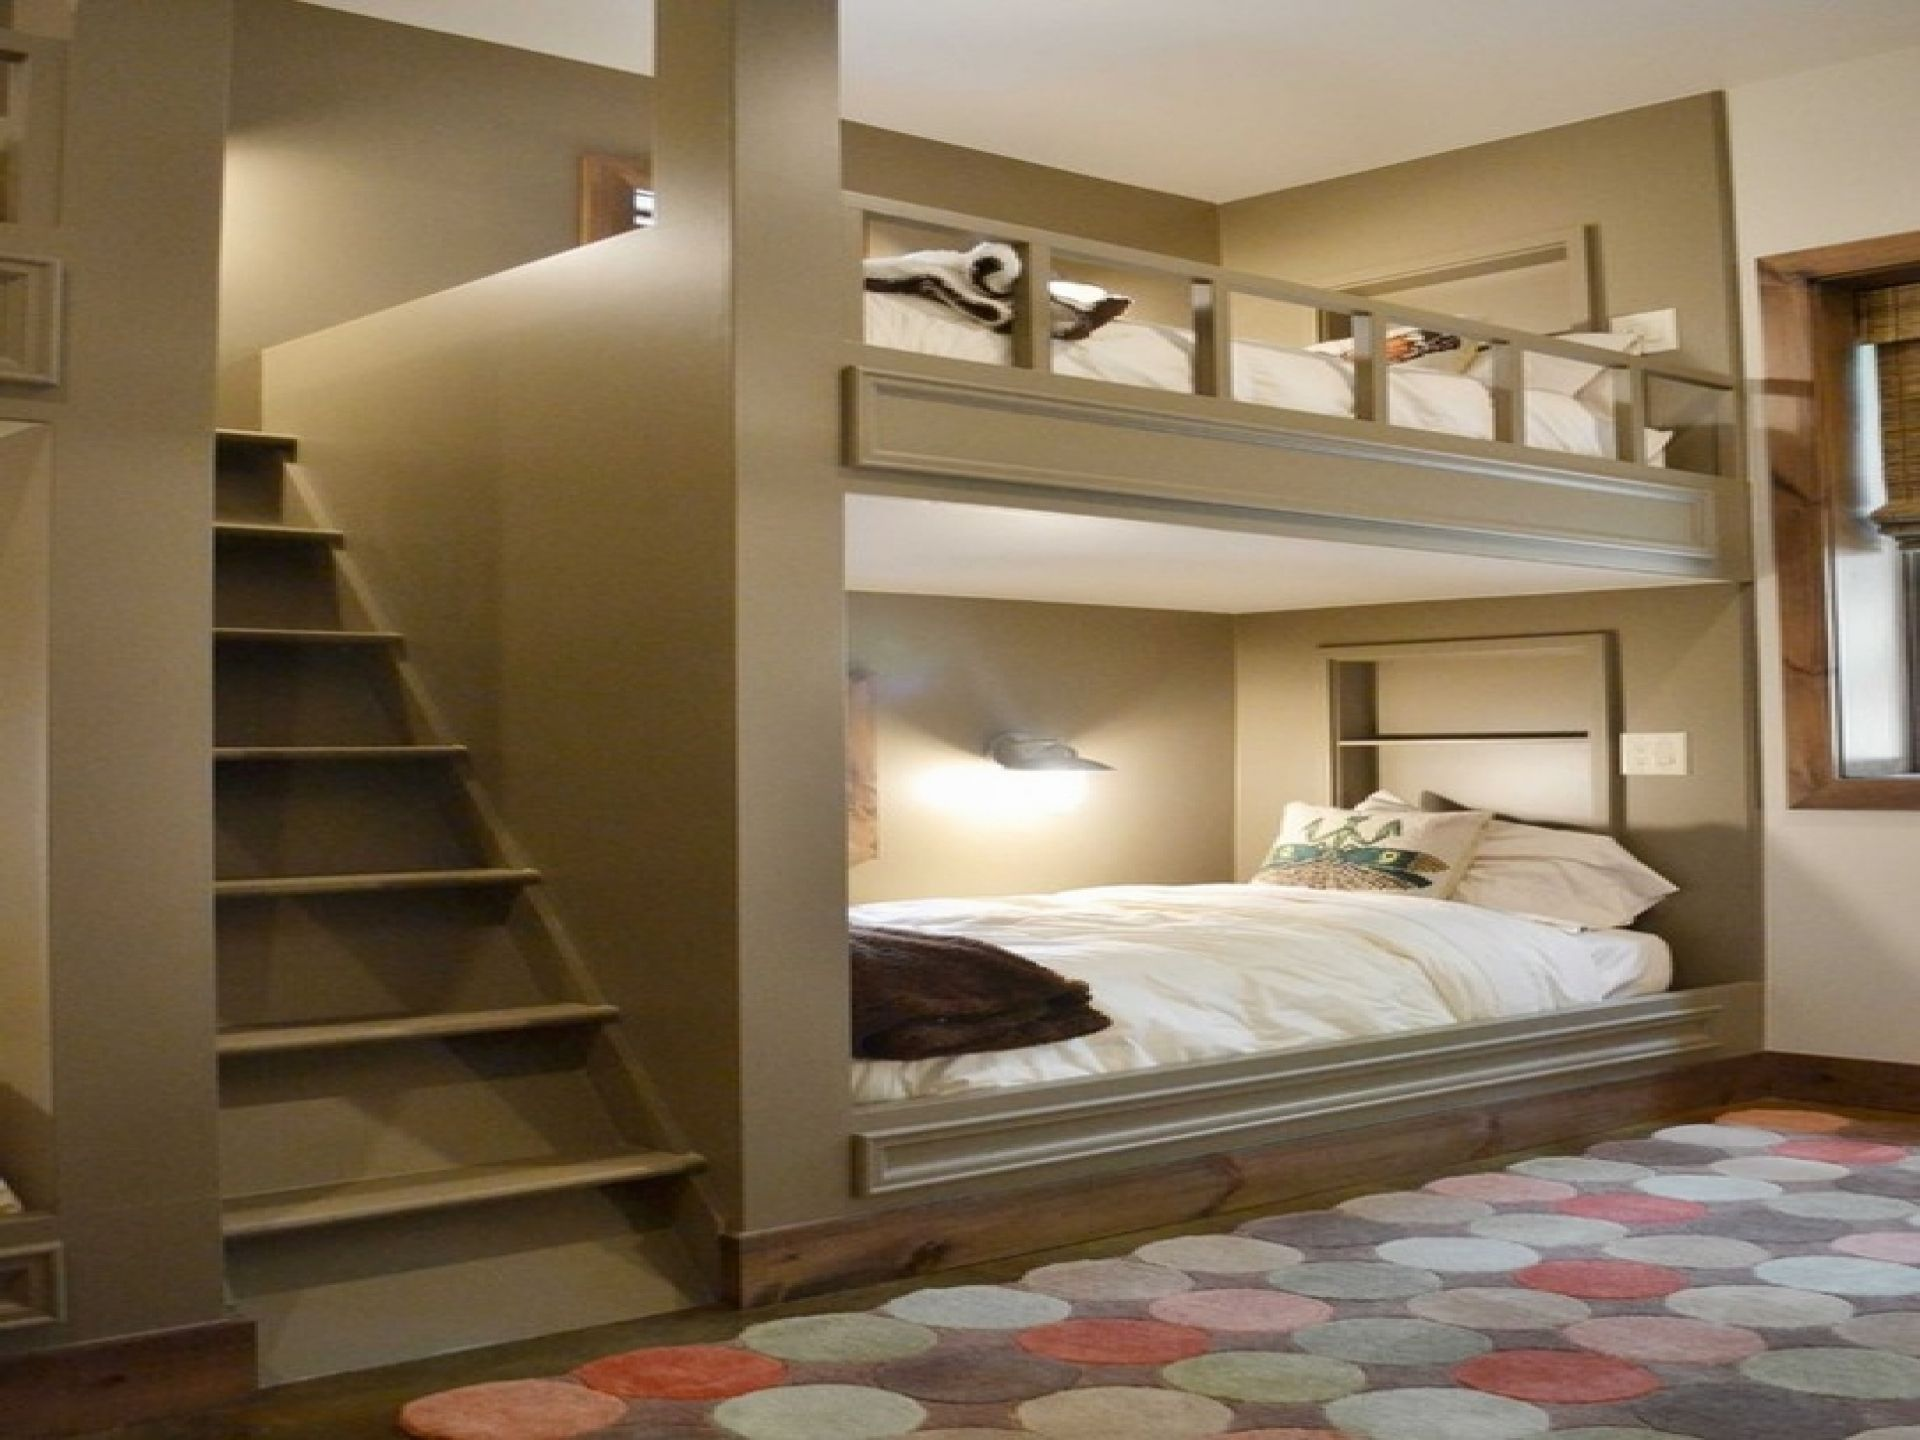 Cool Bunk Beds Unique Elegant Ideas Unique Elegant Bunk Beds With